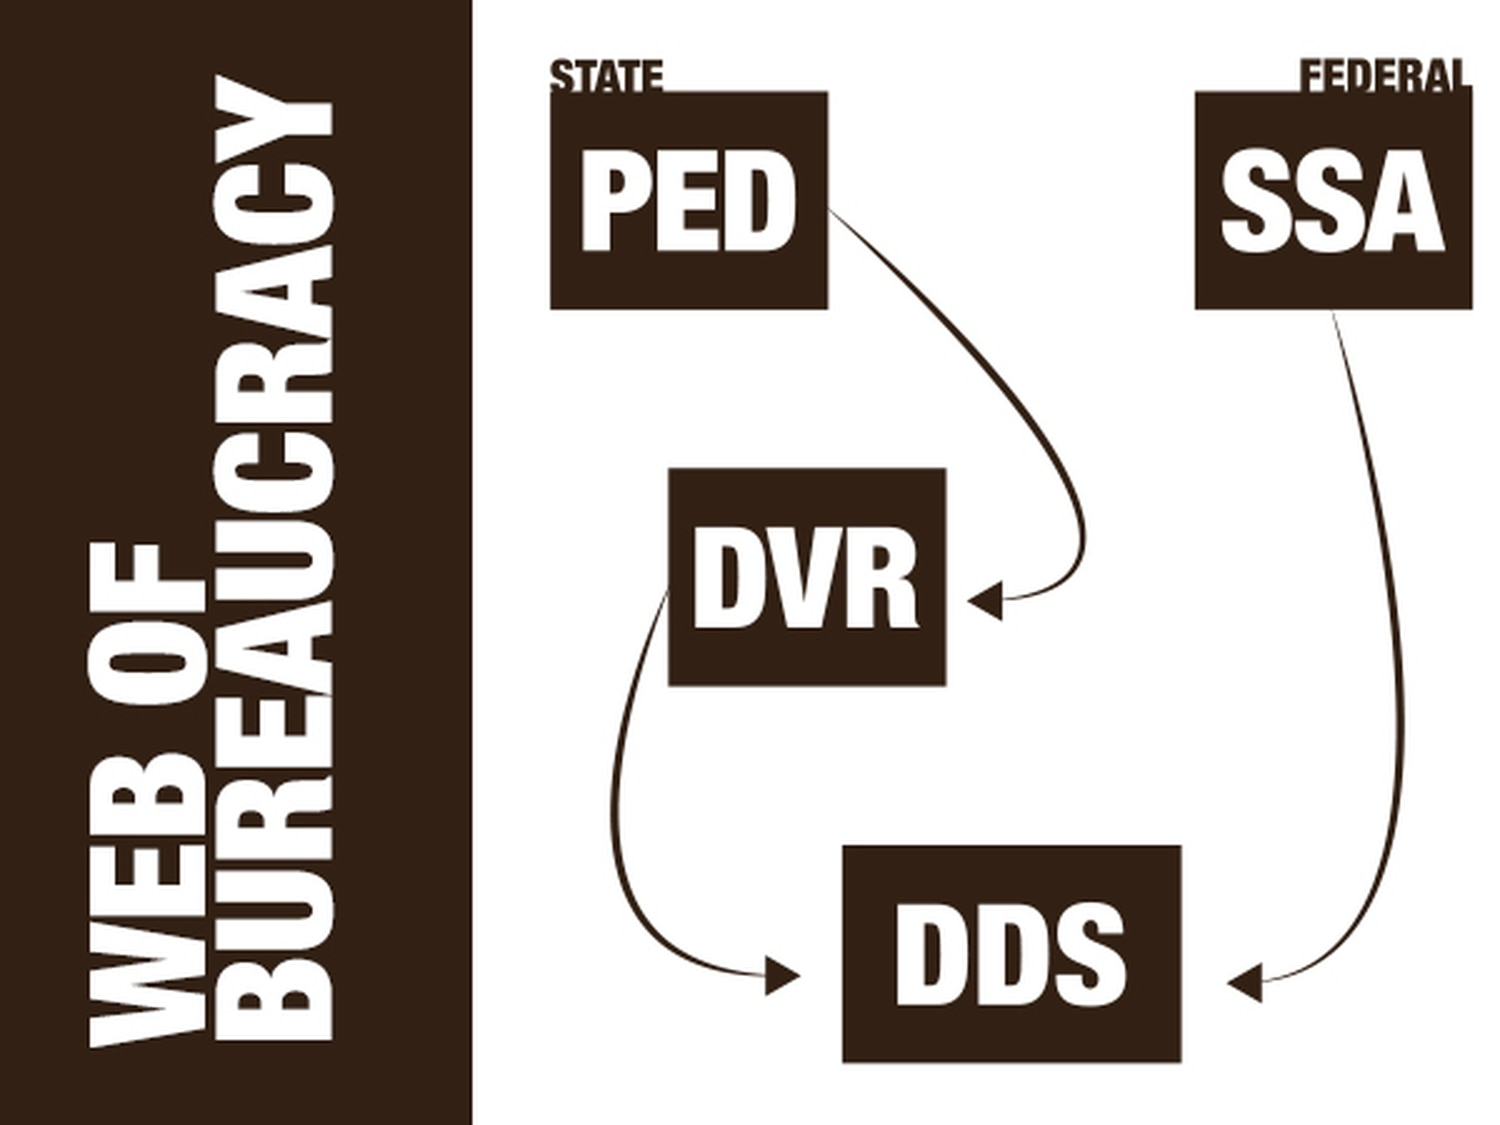 A complex web of state and federal bureaucracy governs New Mexico DDS, the agency responsible for processing Social Security disability benefits.